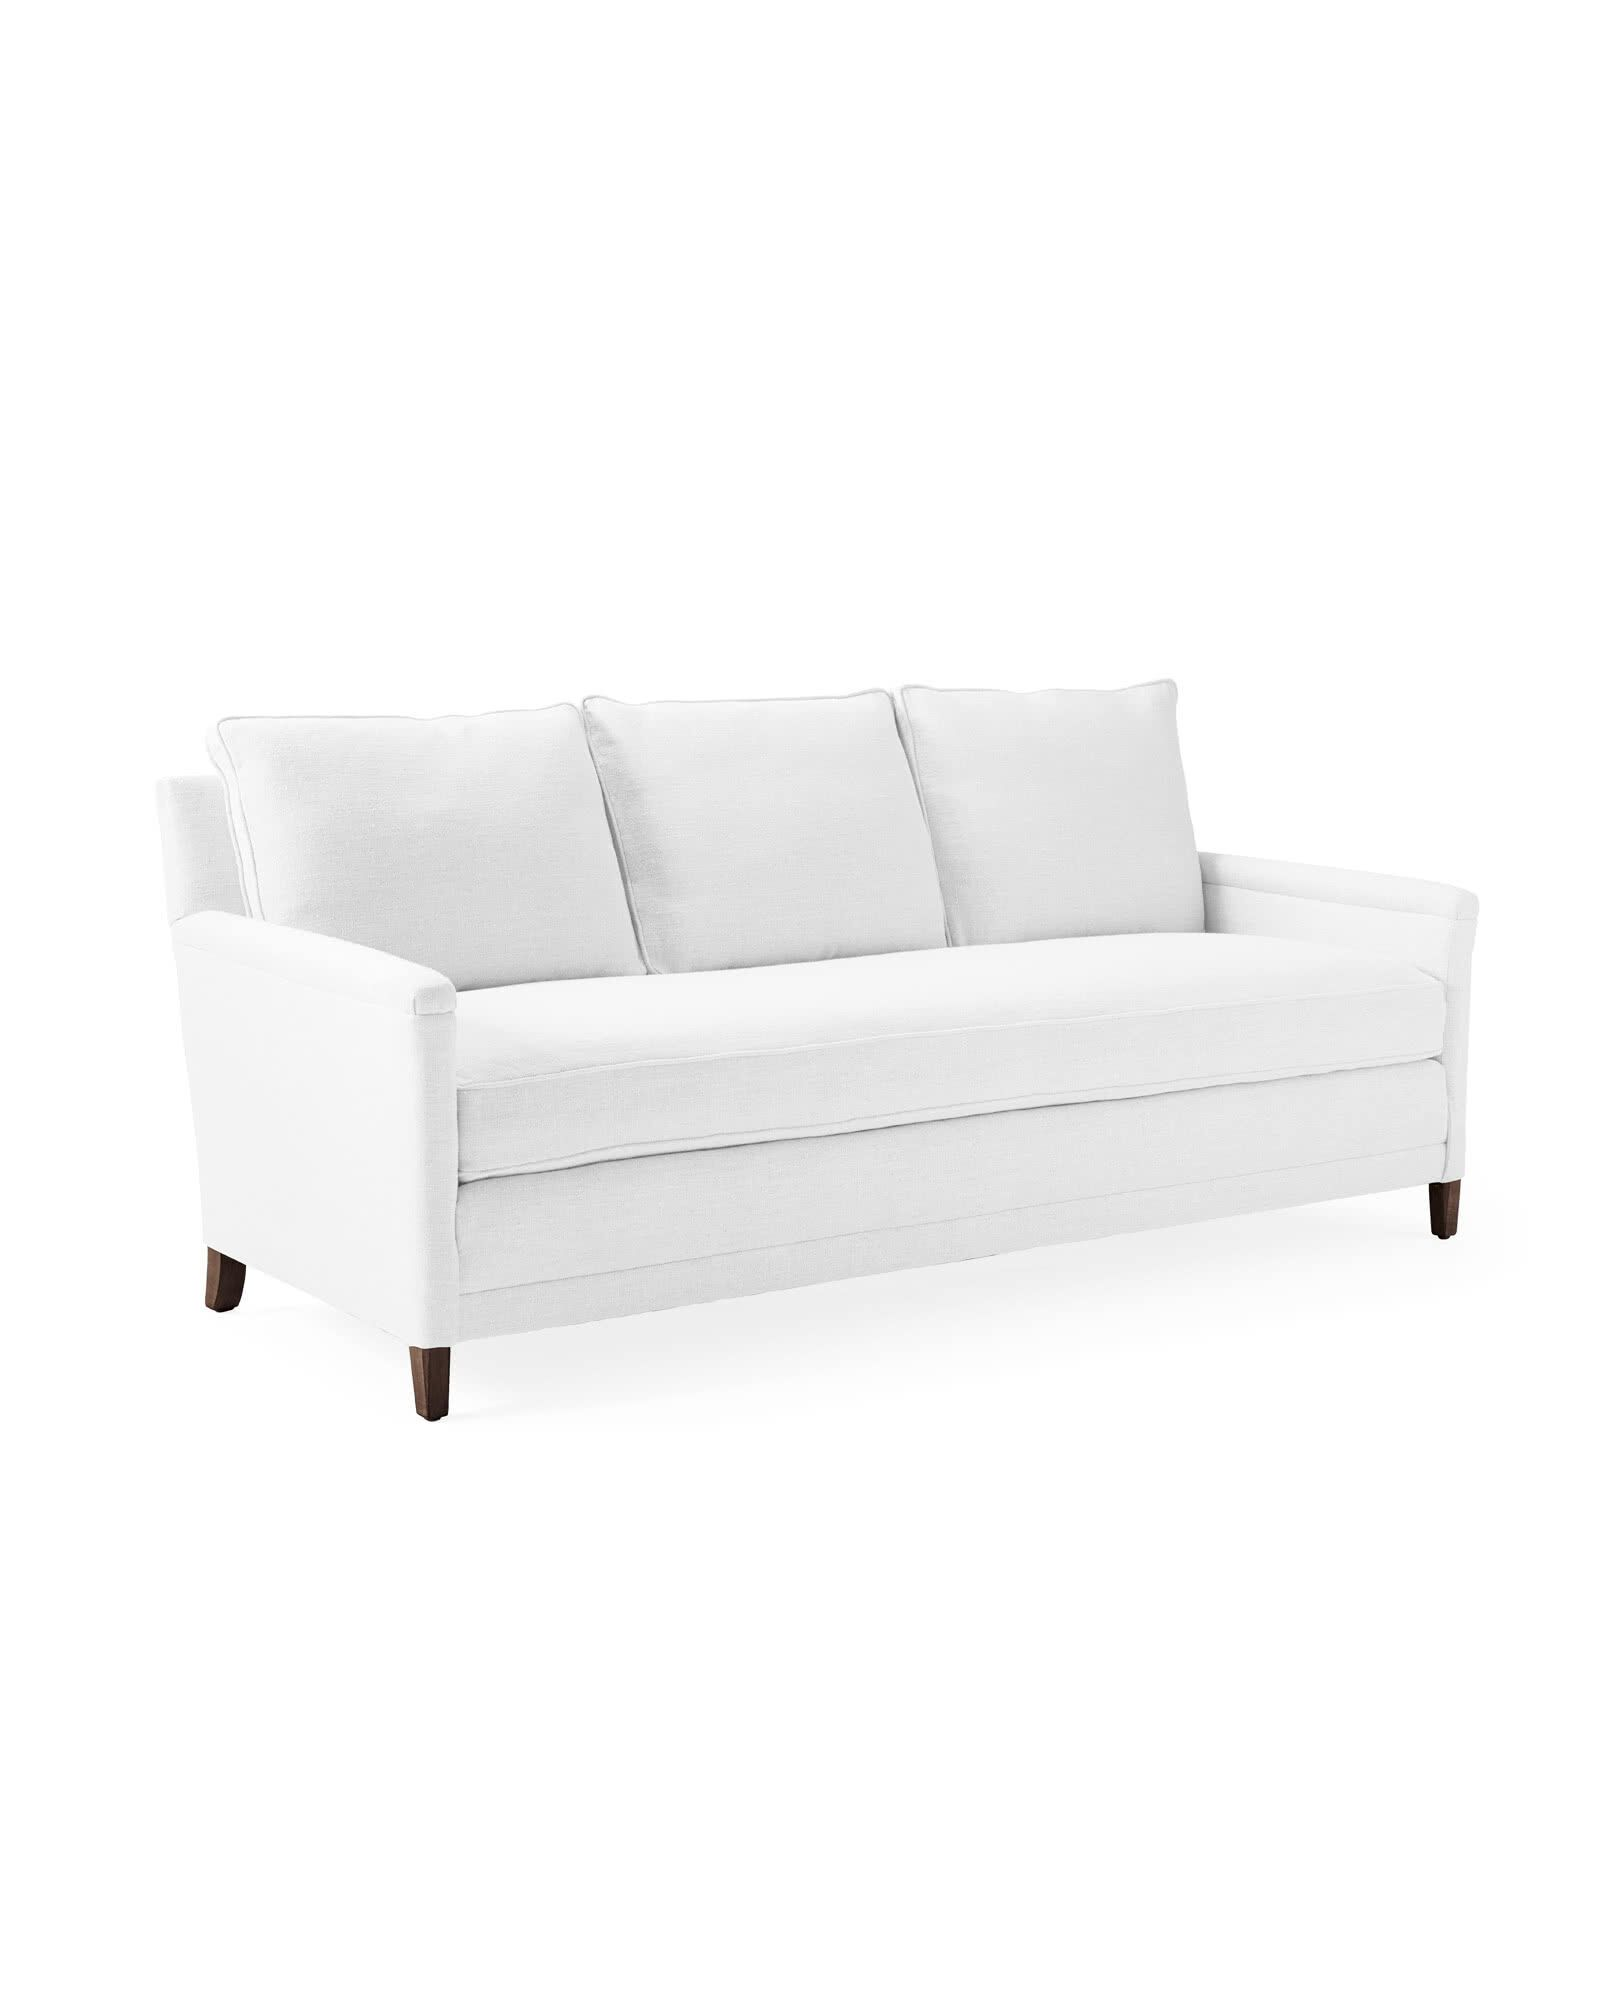 Serena Lily Spruce Street 3 Seat Sofa With Bench Seat In 2020